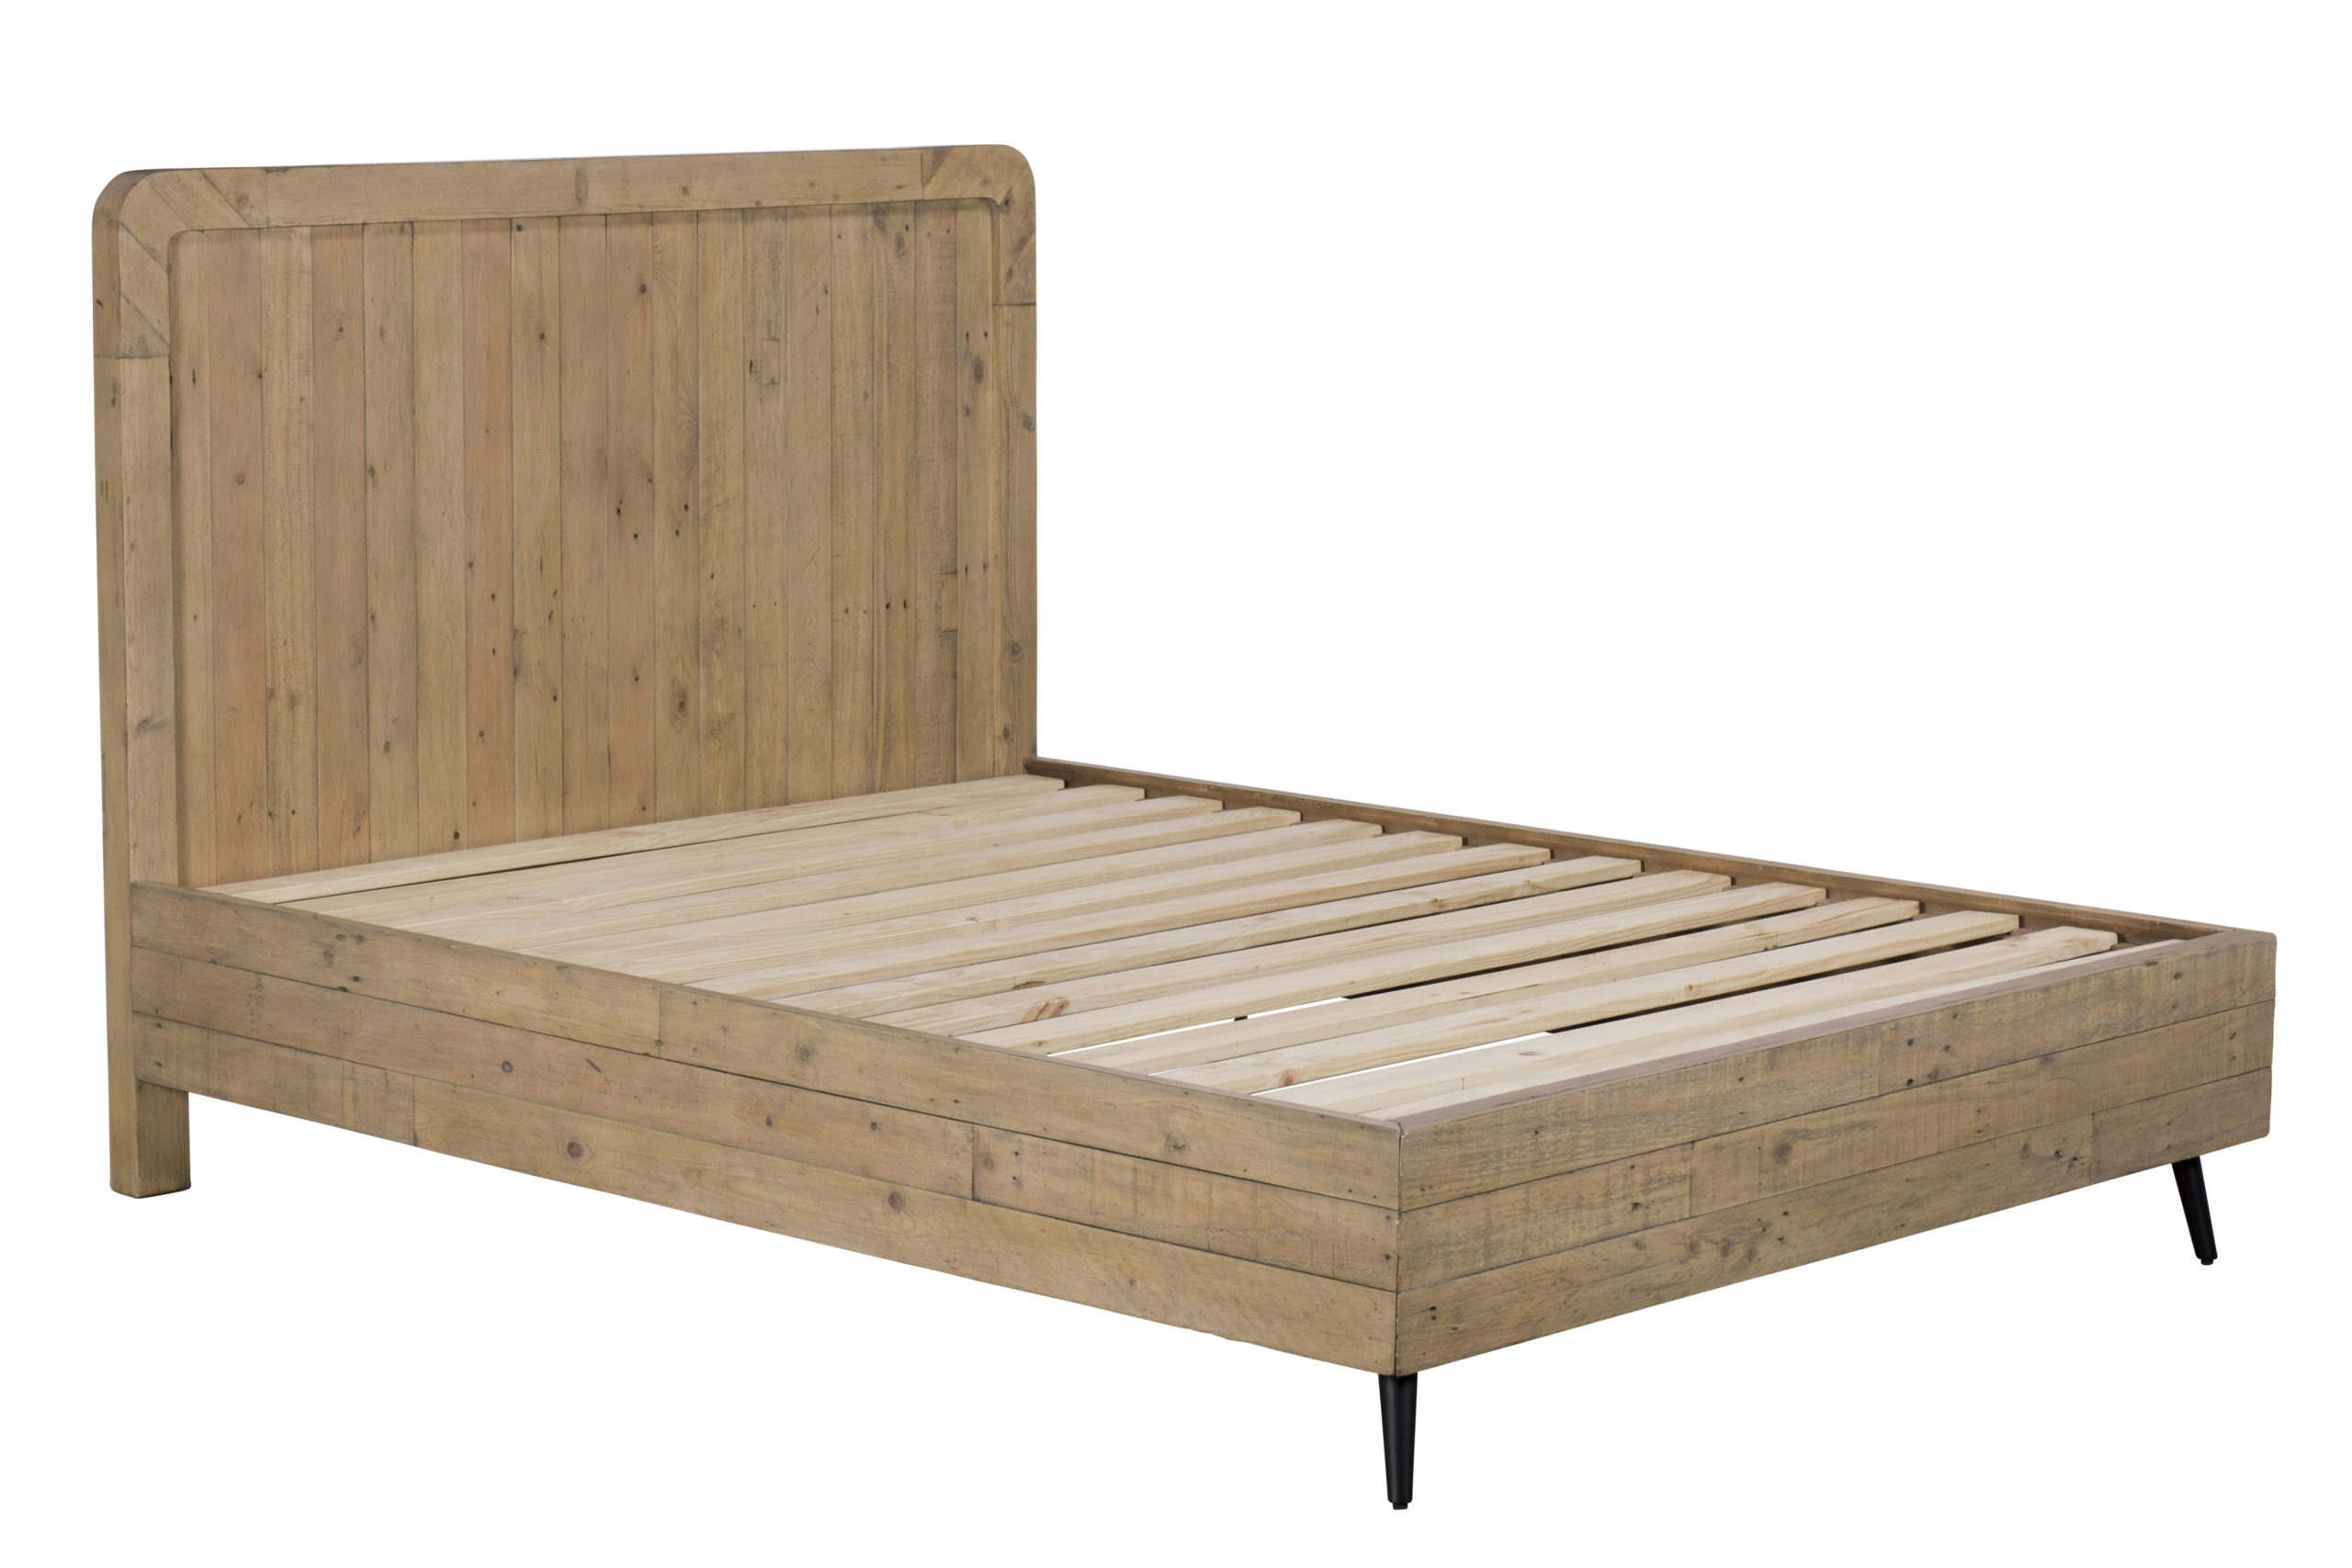 Verona Bed Resized VB02 1 scaled